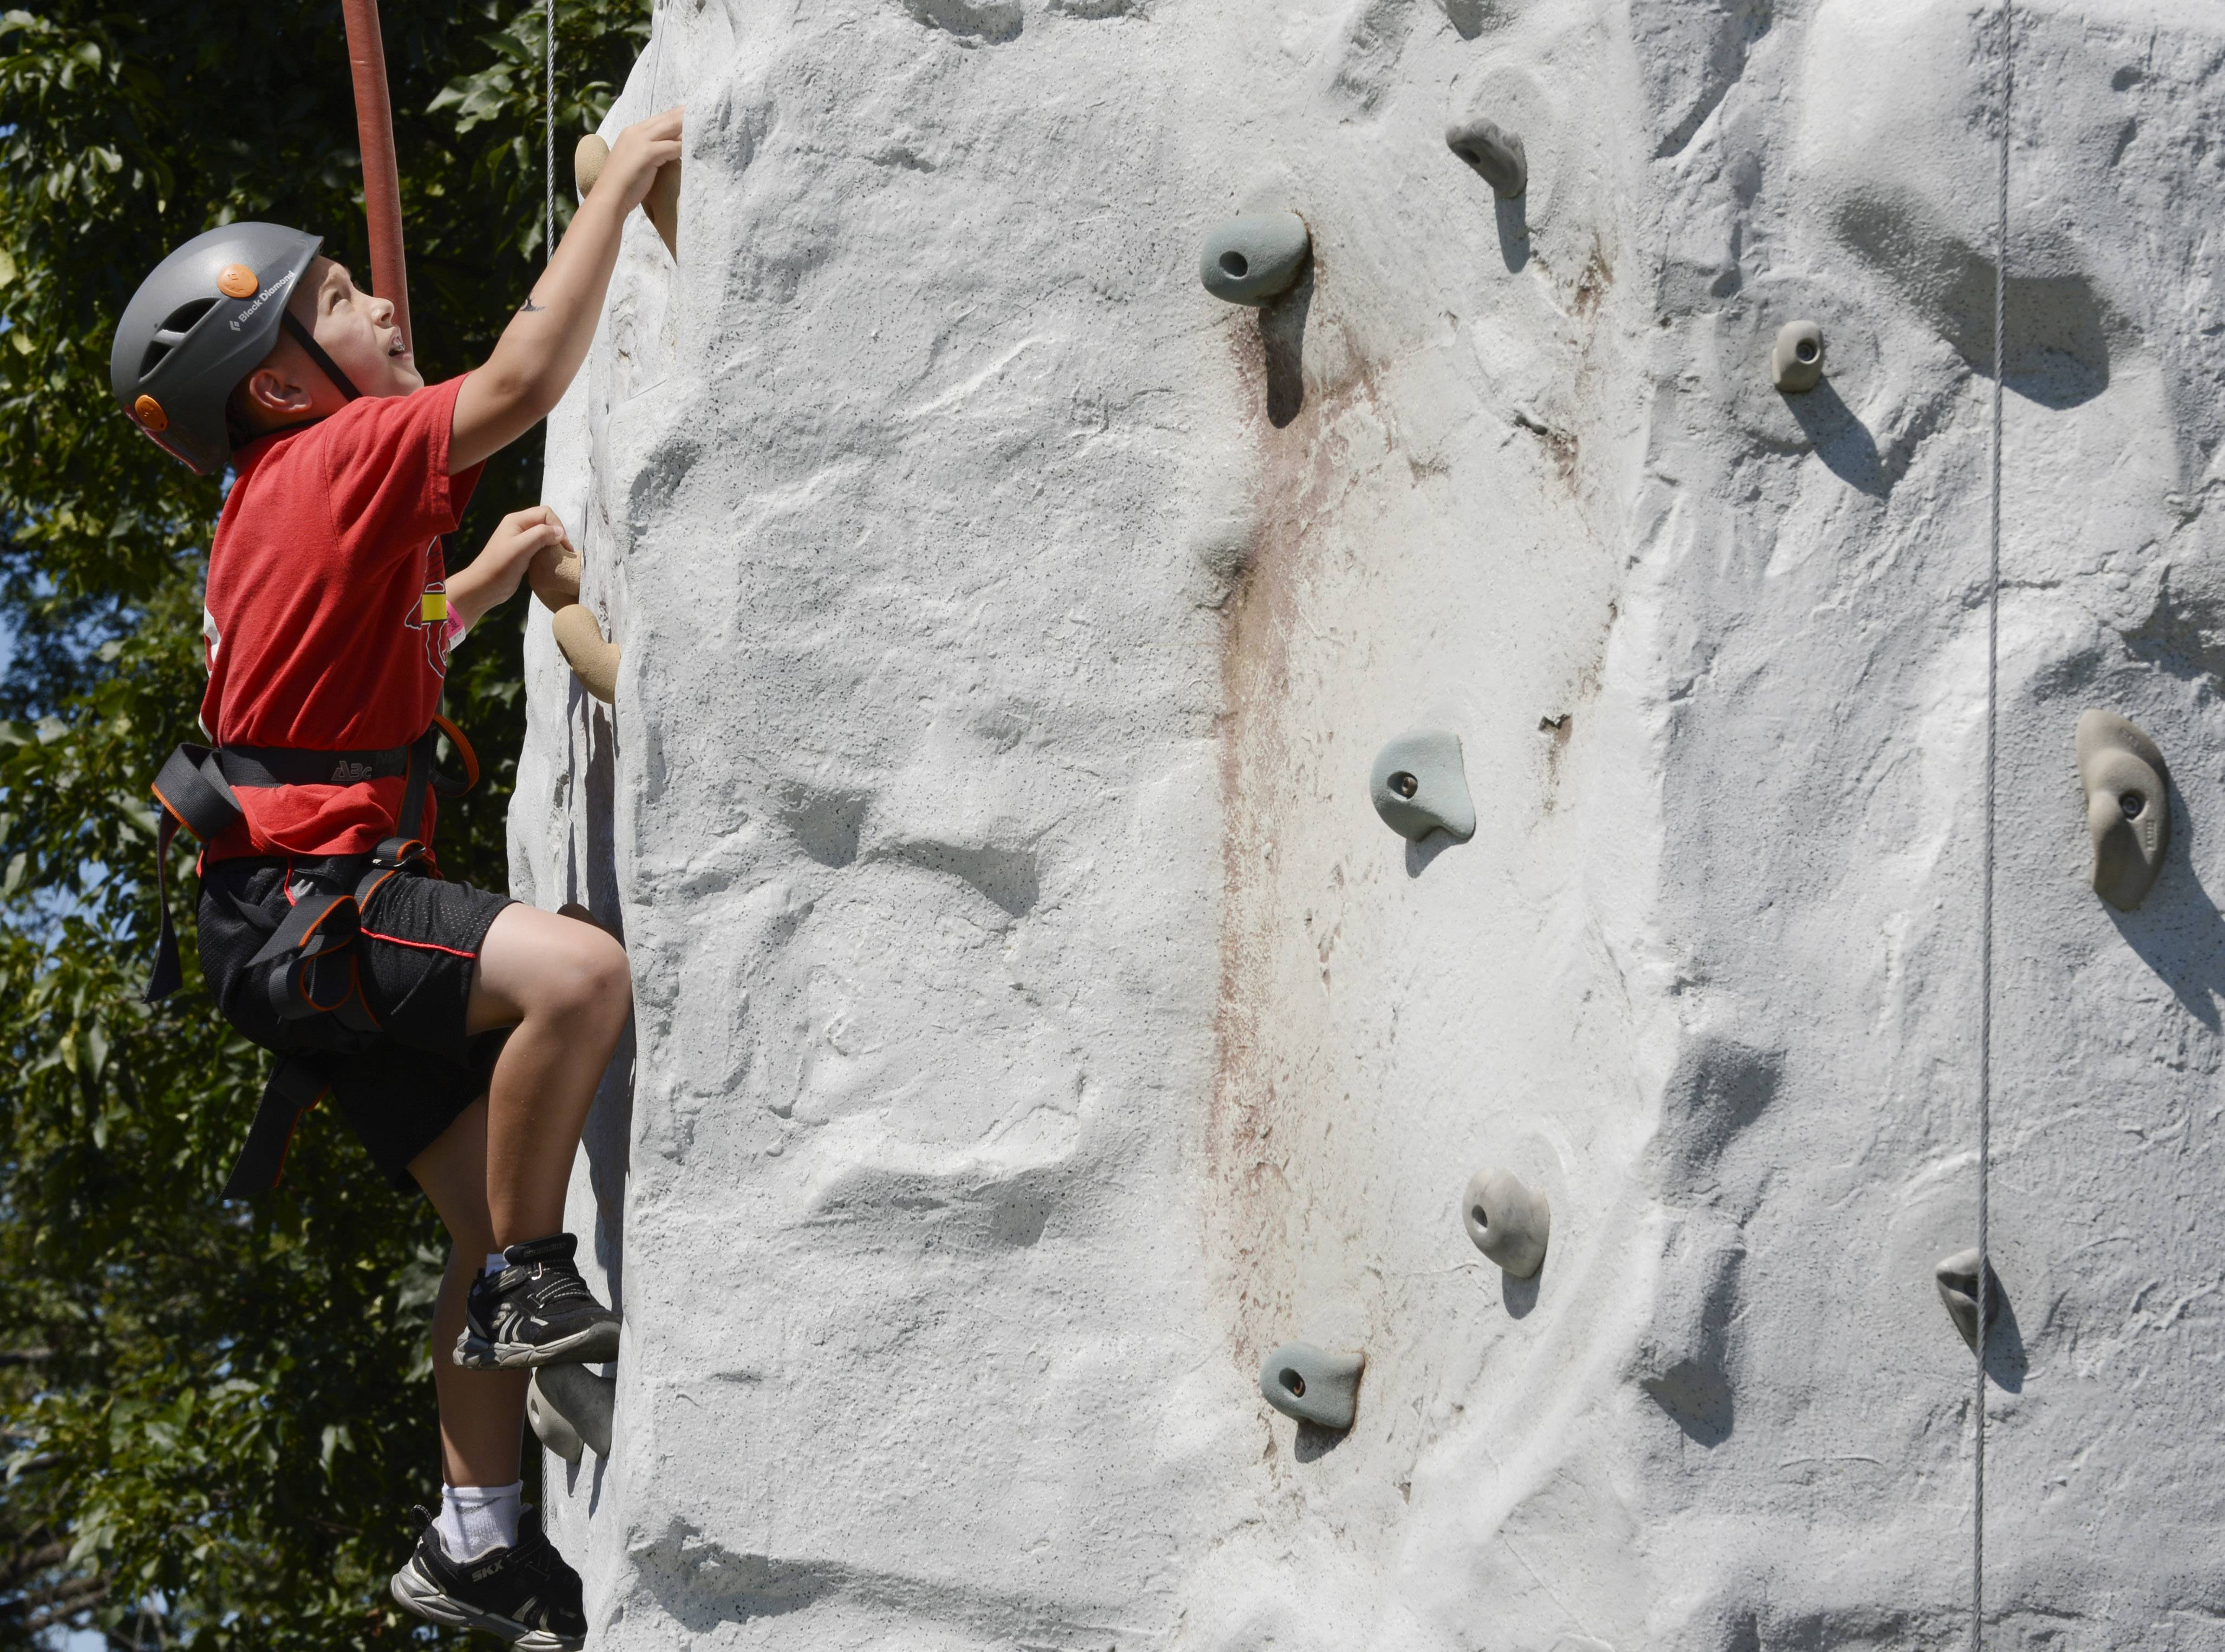 Jacob Chrzastowski, 7, of Round Lake climbs to the top of the climbing wall, hosted by the Boy Scouts, during the Round Lake Home Town Festival Saturday.